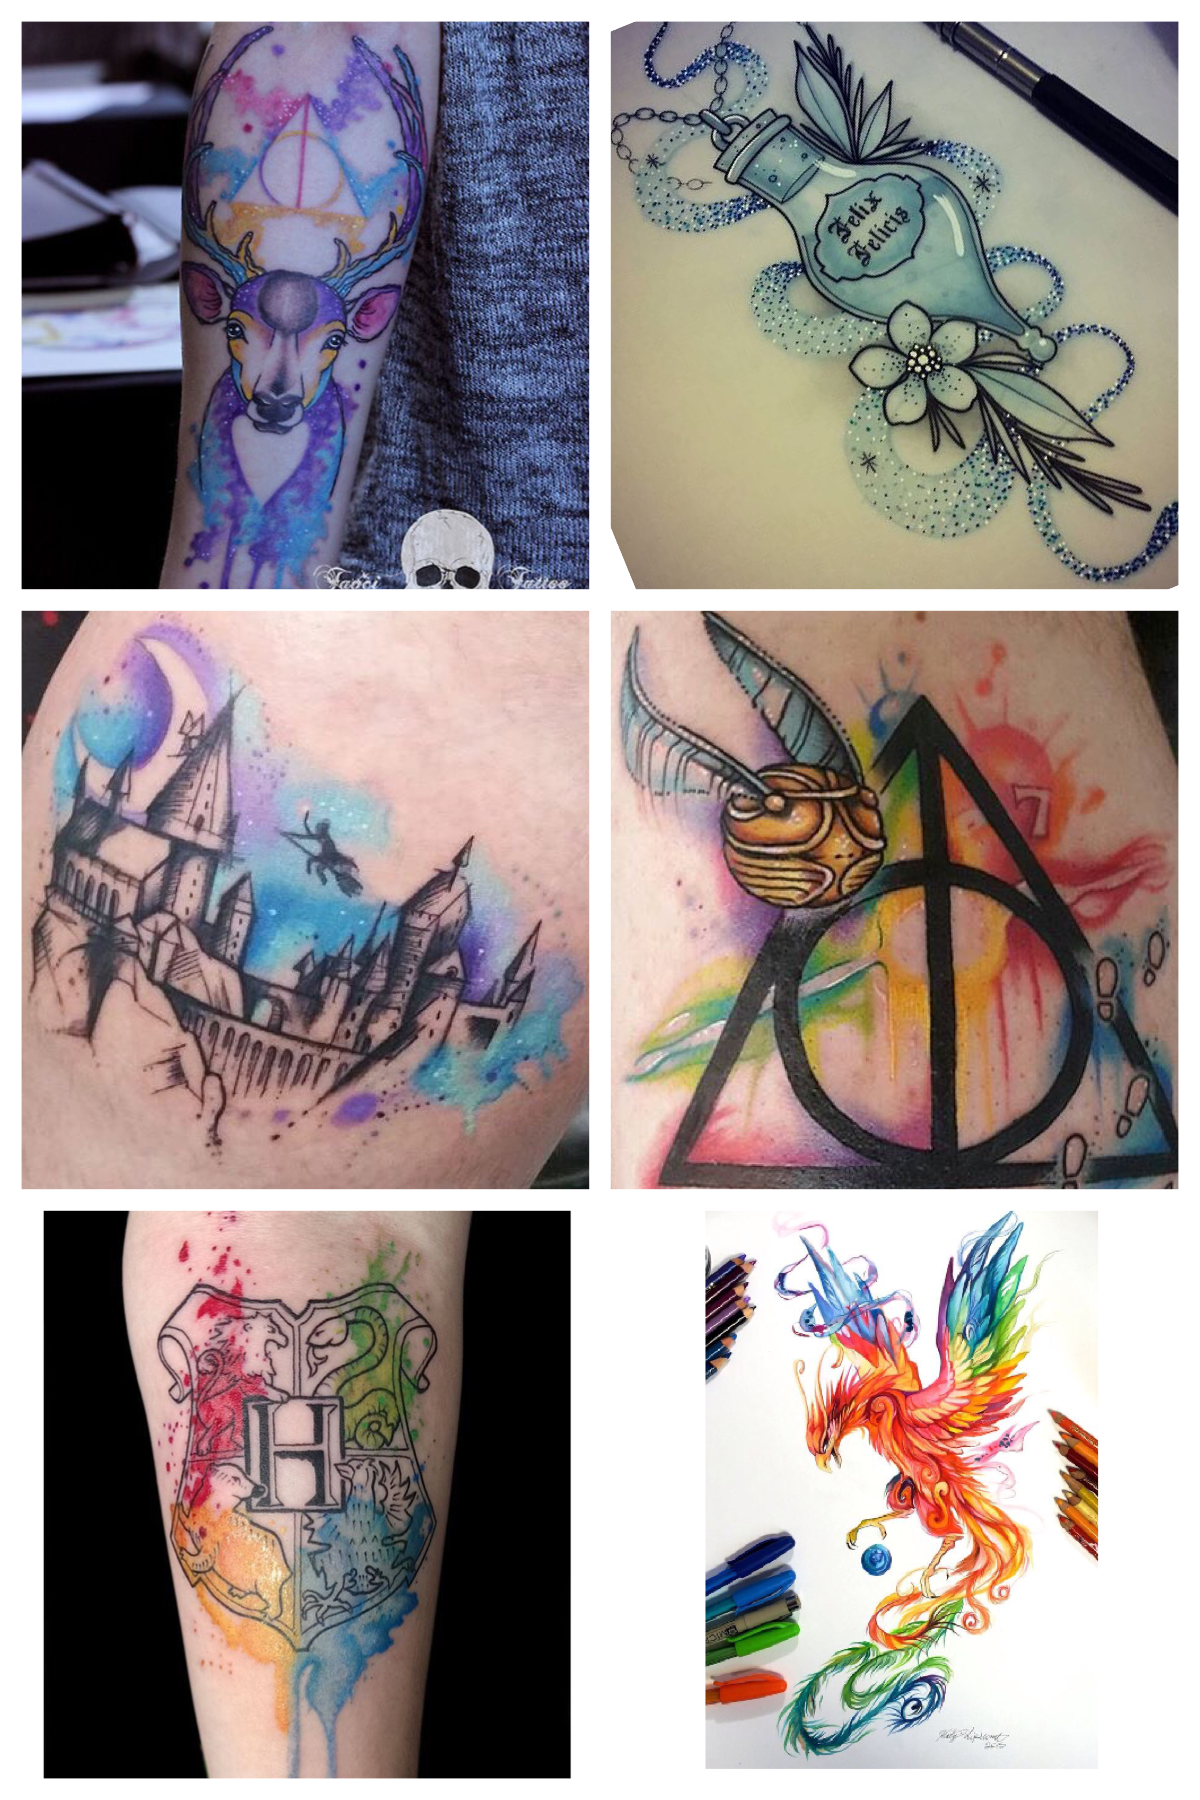 Harry Potter Themed Sleeve Tattoo Designs Harry Potter Tattoos Tattoos Sleeve Tattoos